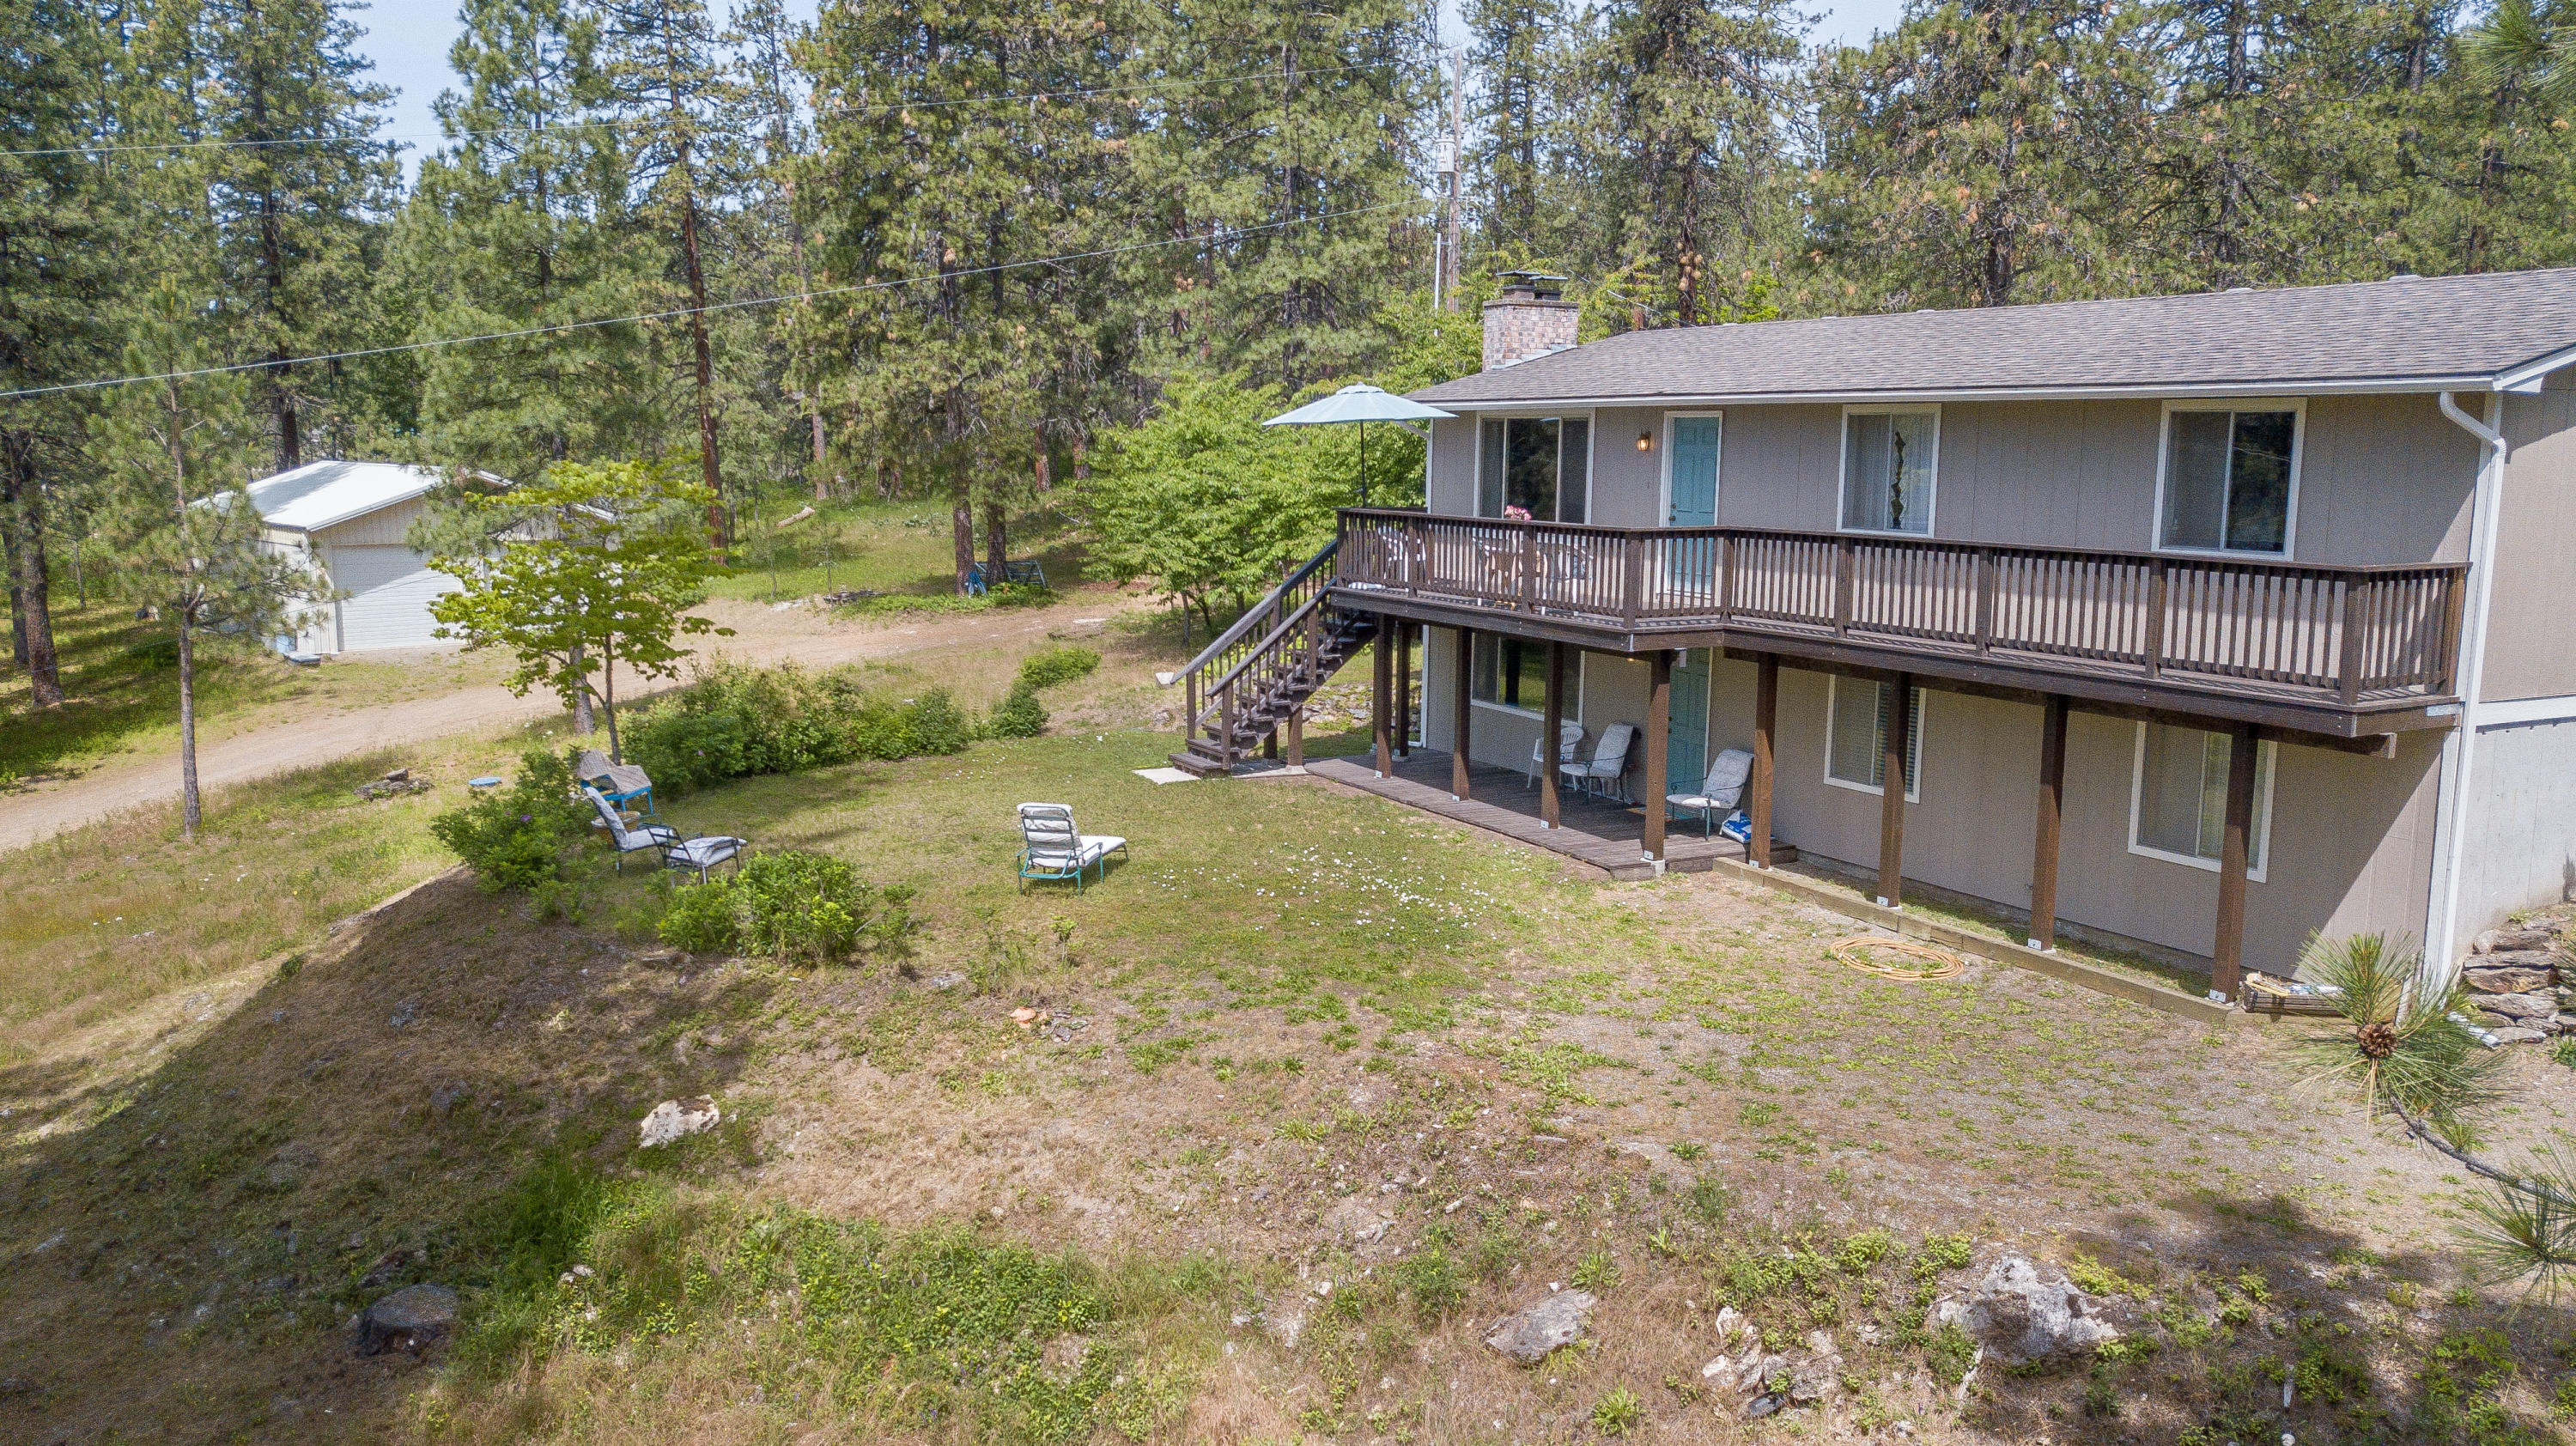 photo of 12530 N Chase Rd Rathdrum Idaho 83858